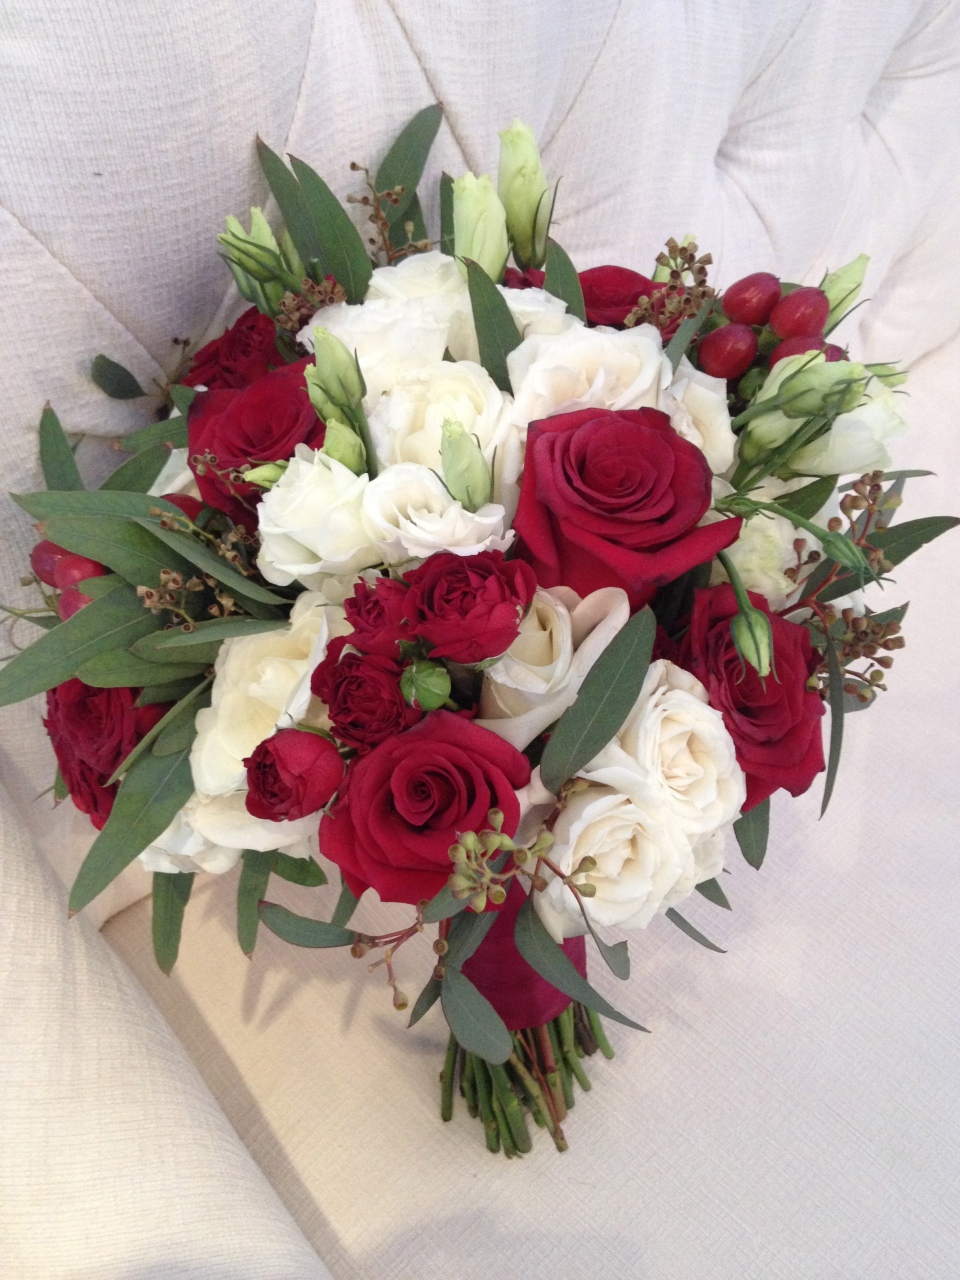 Garden style bouquet in cranberry and white.